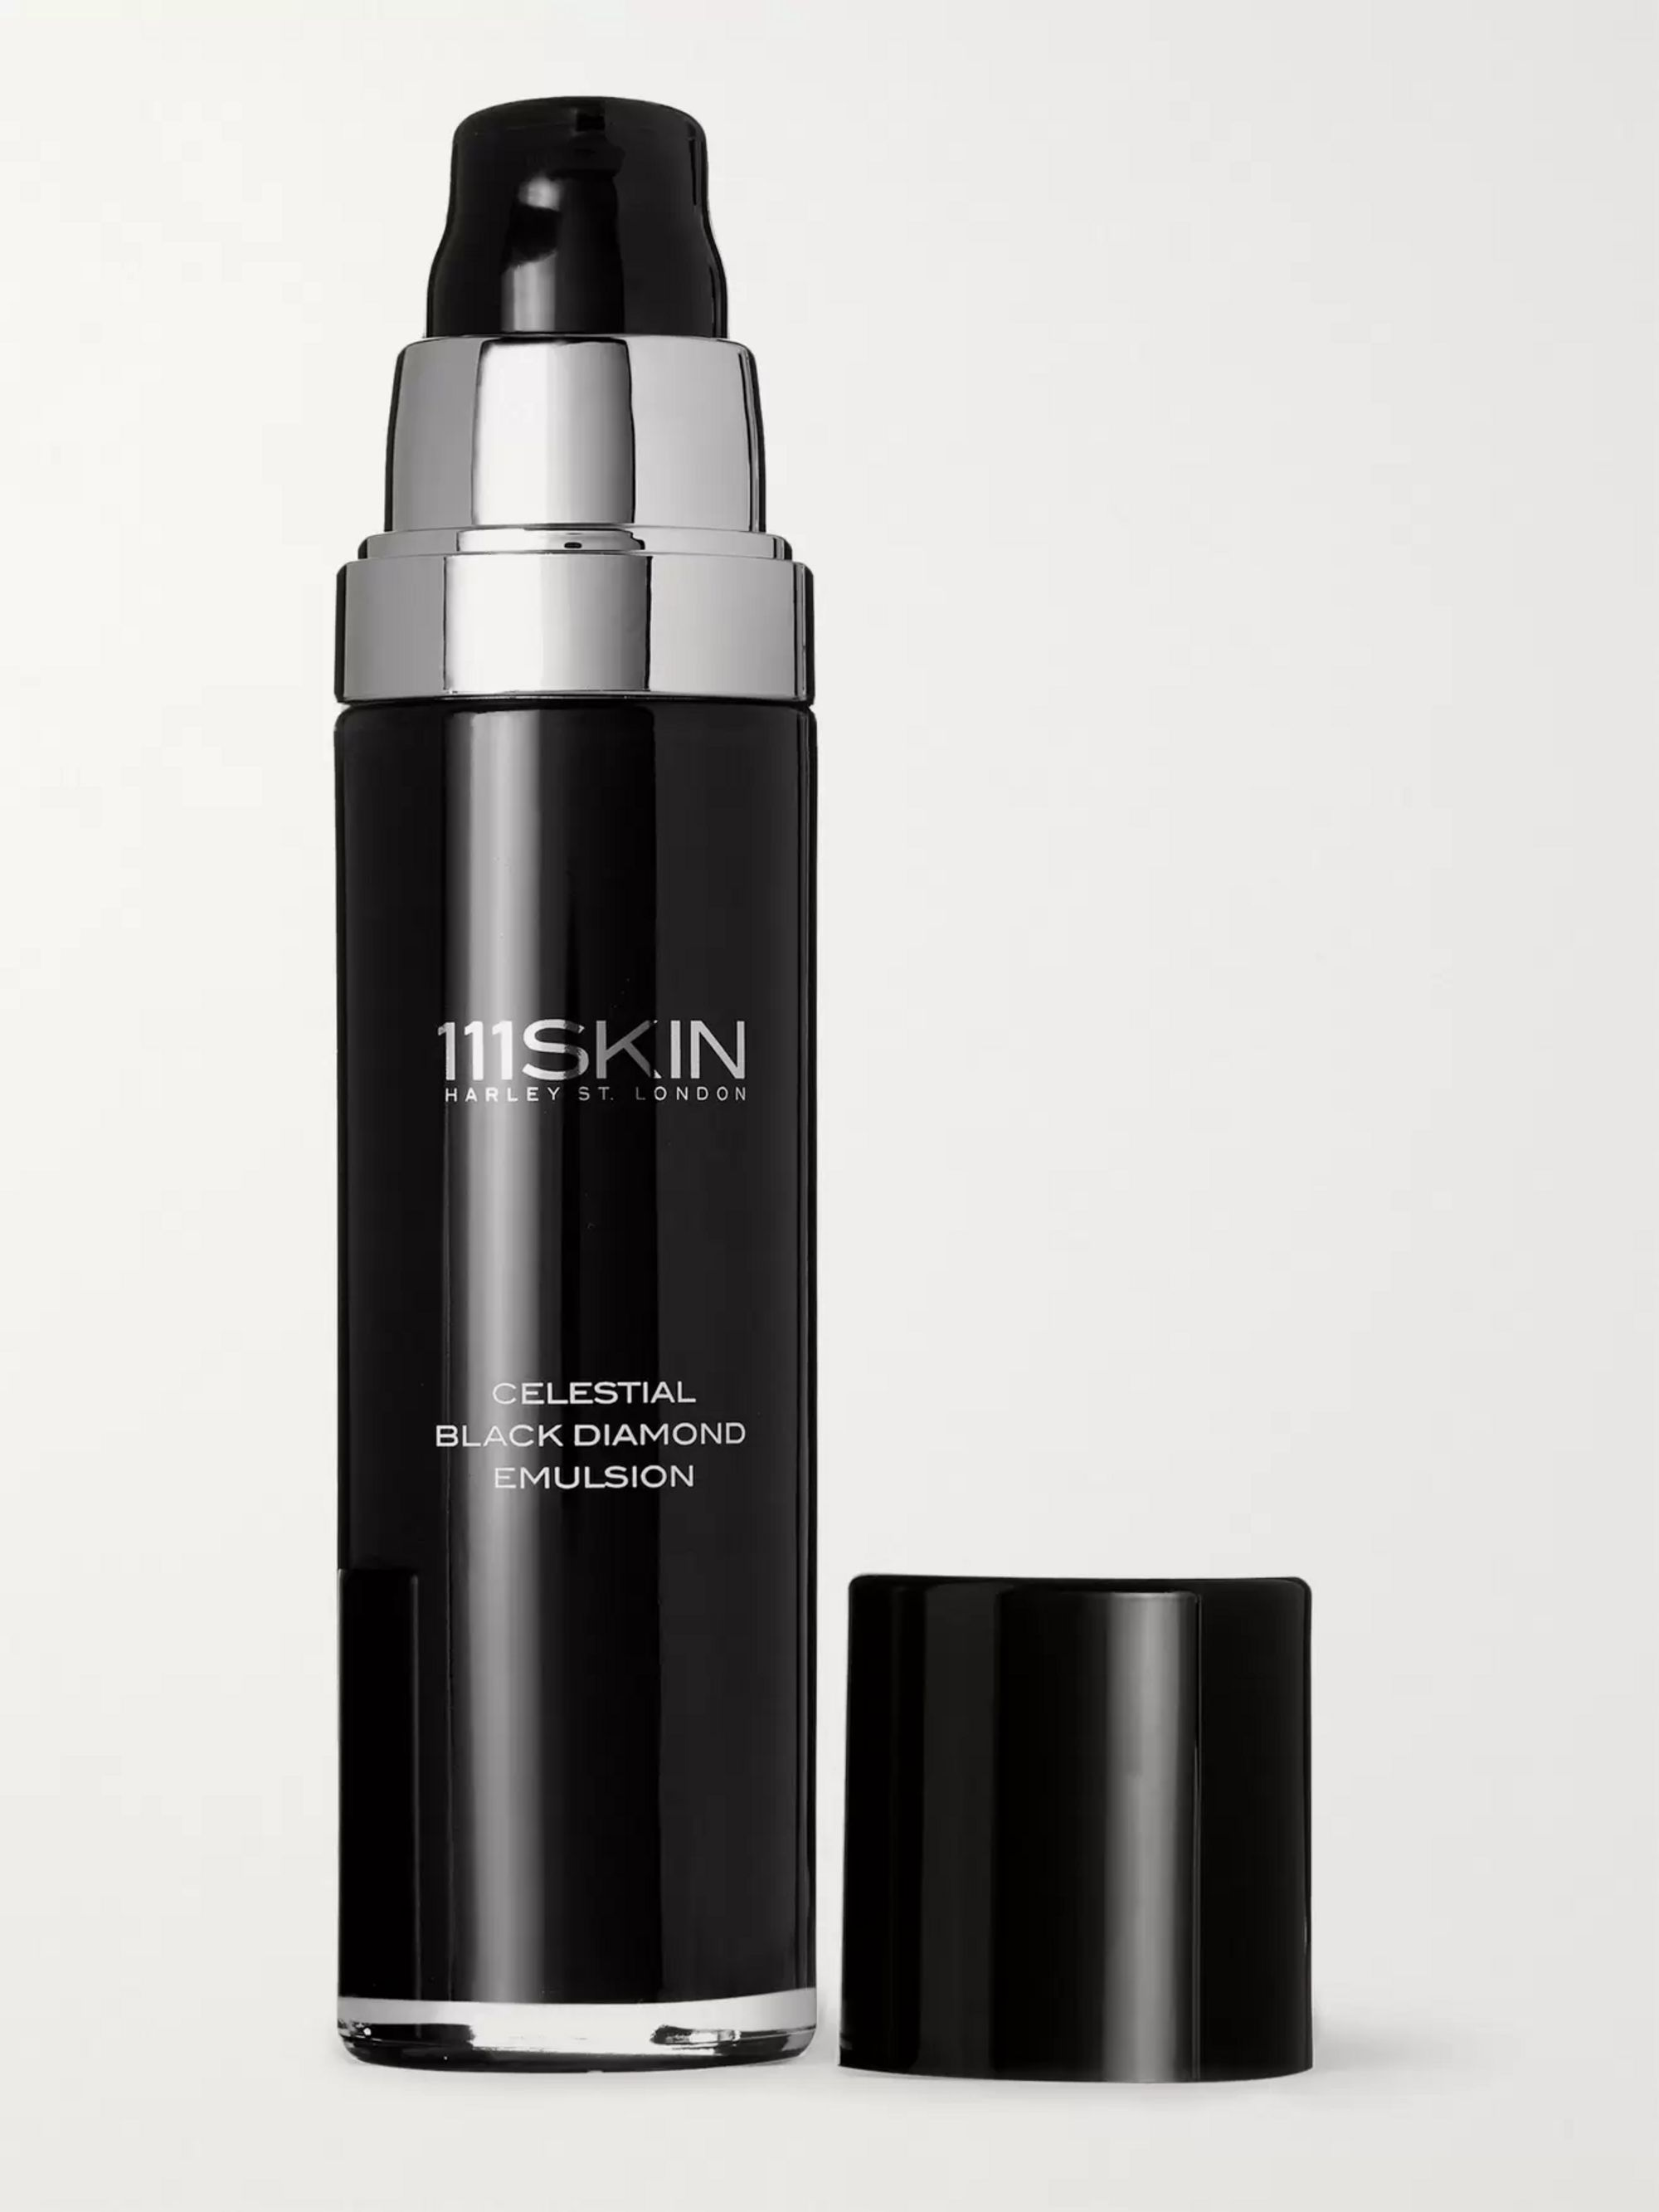 111SKIN Celestial Black Diamond Emulsion, 50ml